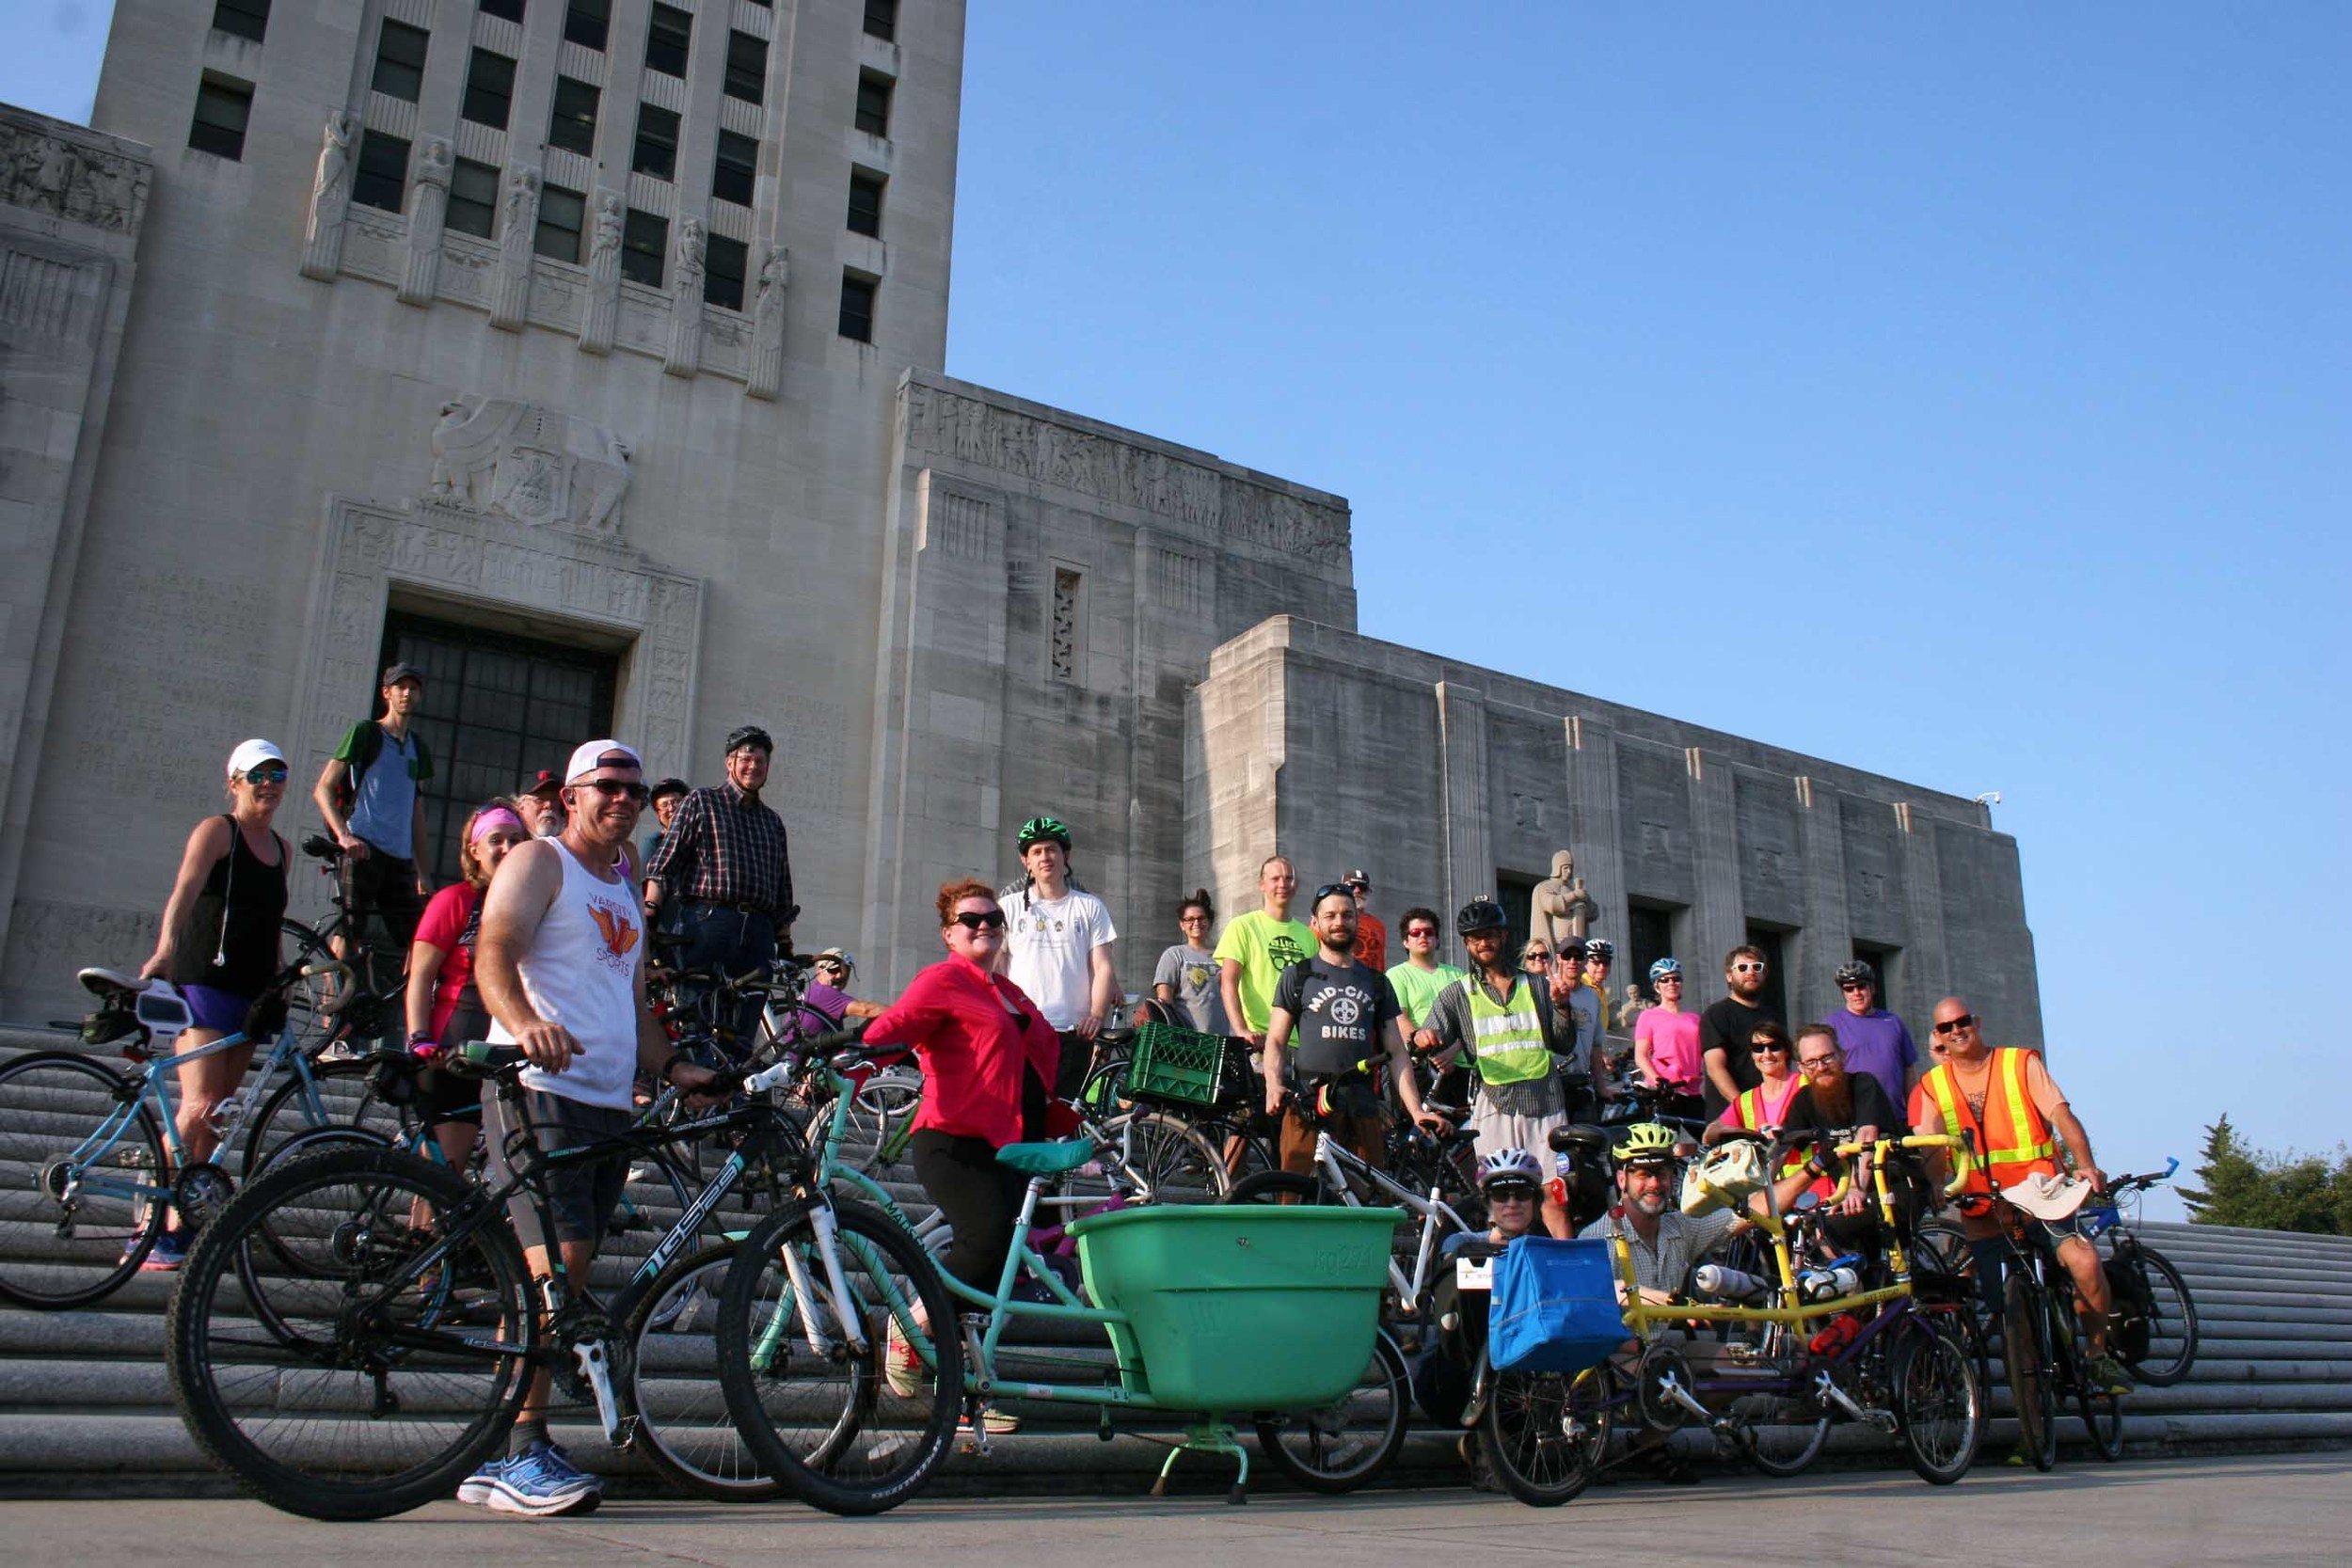 Bike Baton Rouge and Varsity Sports hosted a bike/run event in support of SB 171 that was attended by over a hundred runners and bicyclists